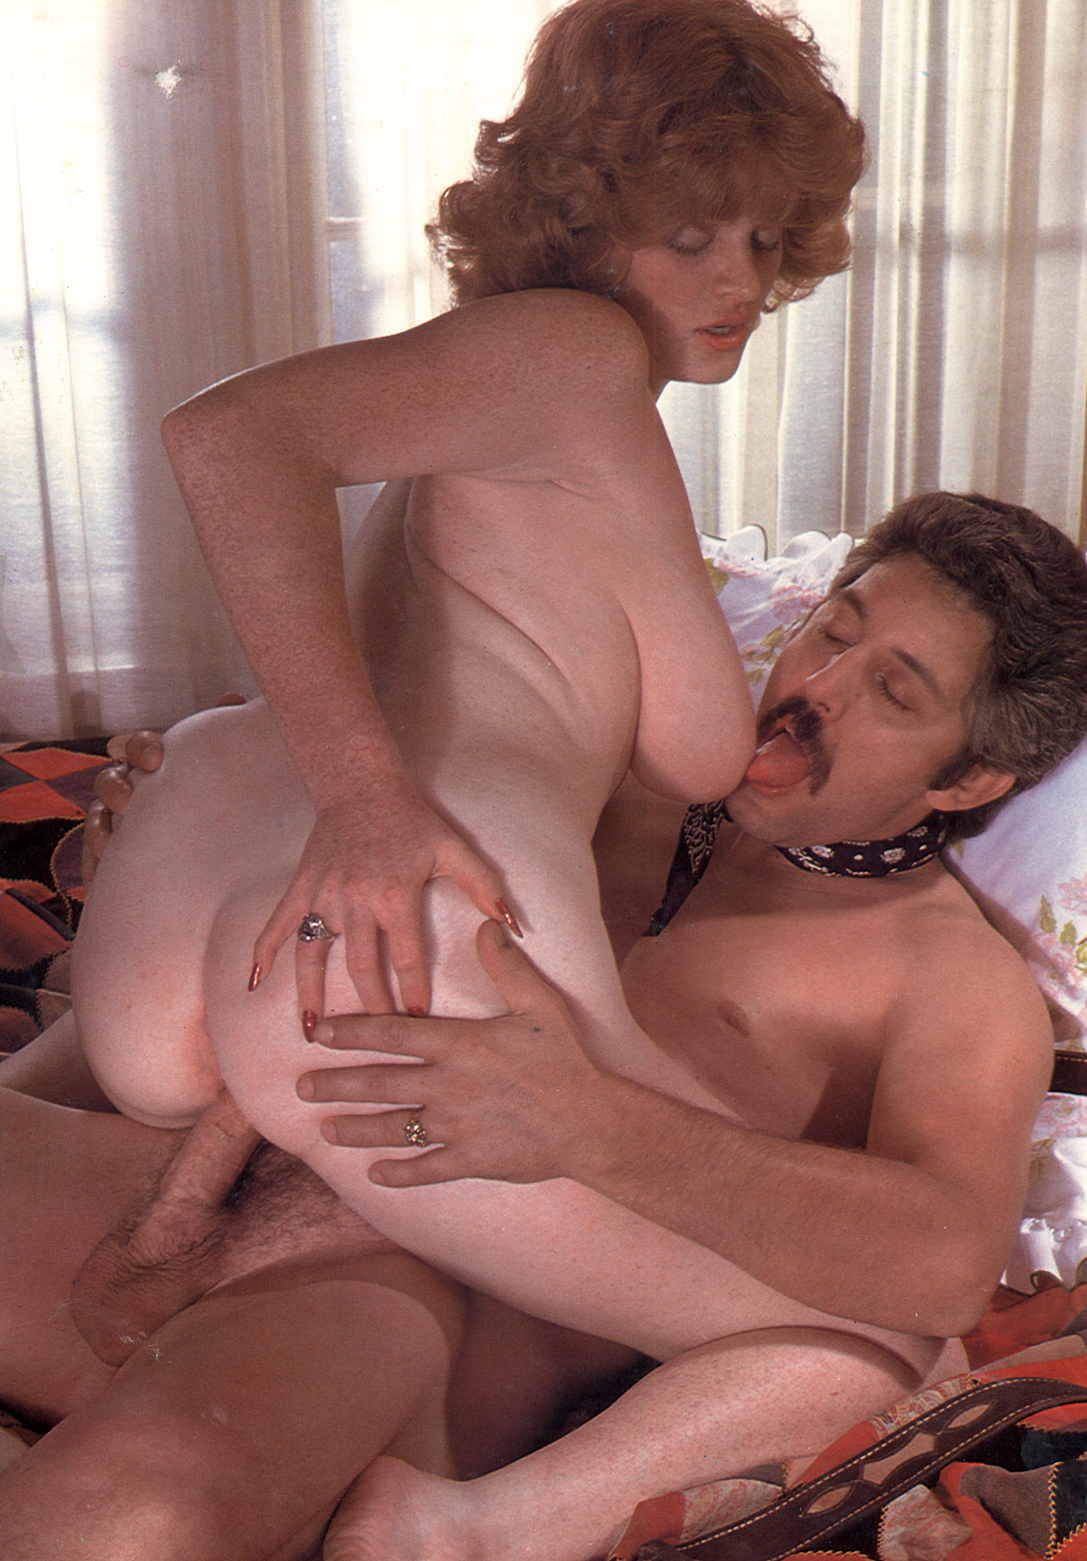 hardcore sex game ideas for couples